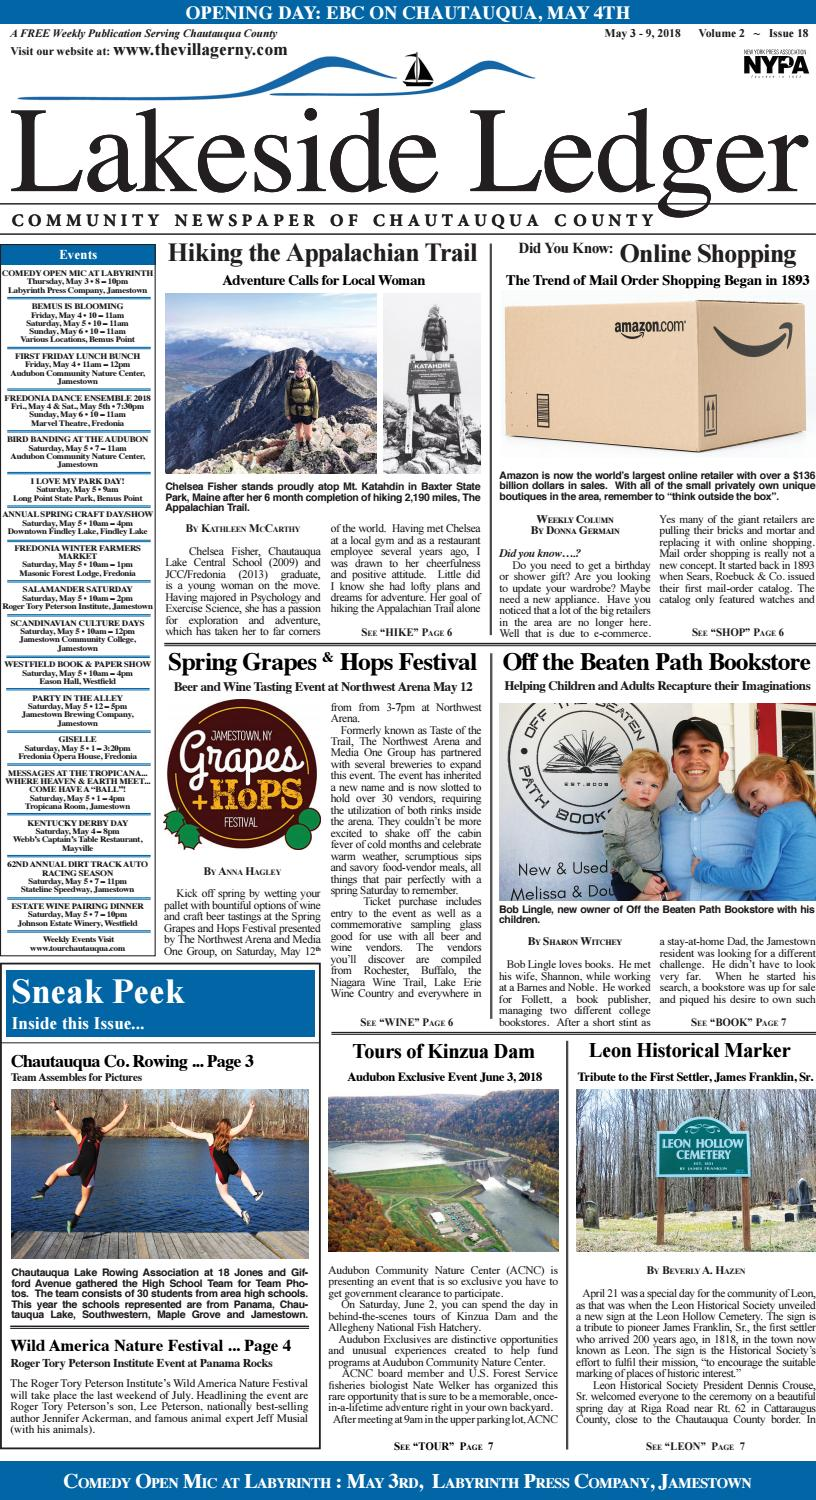 The ledger may 3 9, 2018 volume 2 issue 18 by Jeanine Zimmer